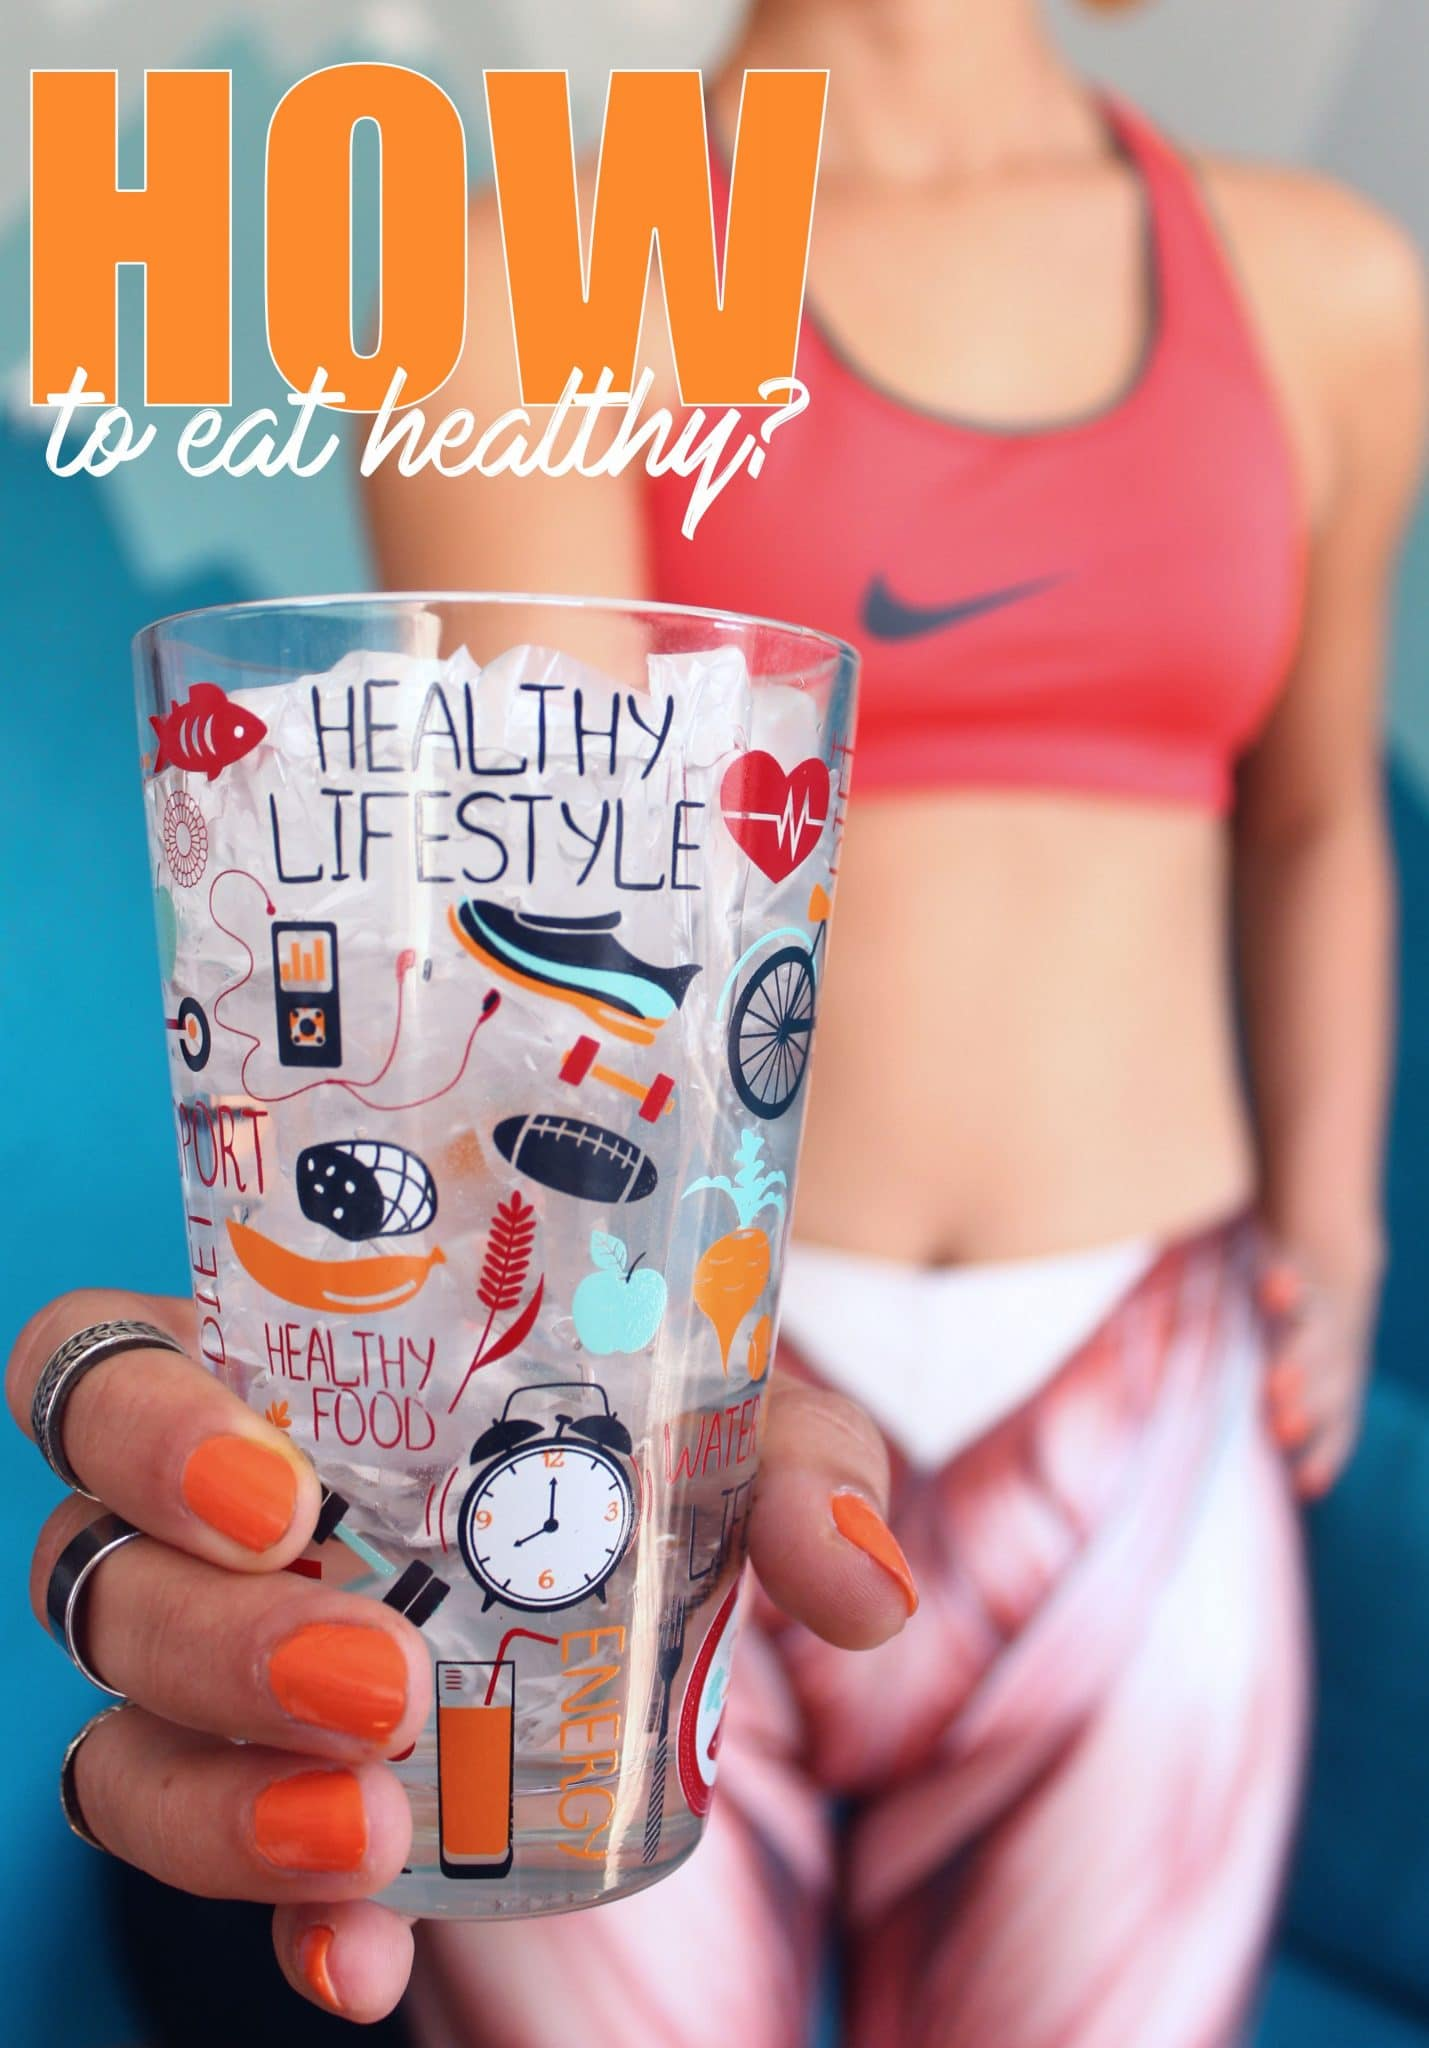 25-fit-girls-healthy-eating-habits-the-ultimate-guide-on-how-to-eat-healthy-for-life-3